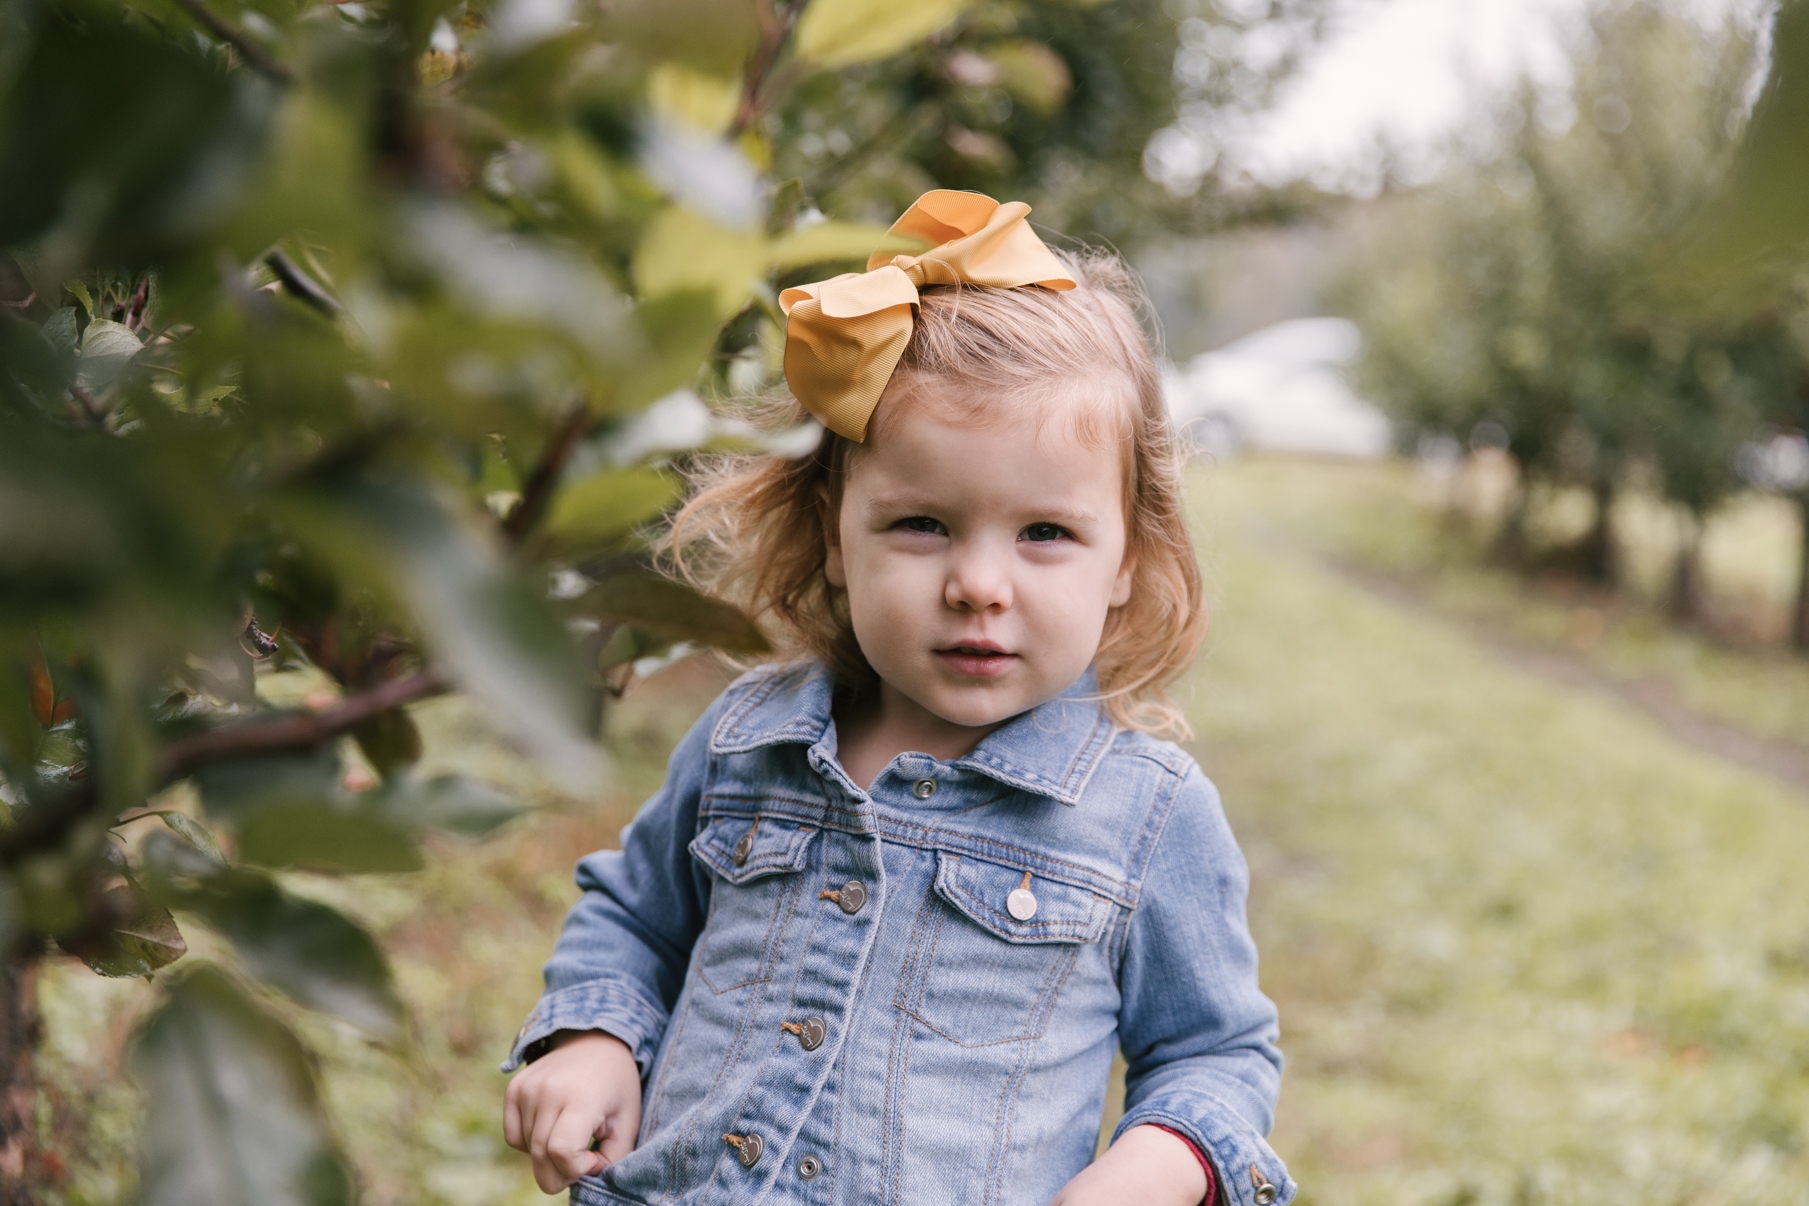 family-photography-session-at-hartford-apple-orchards-hartford-ohio-by-family-photographer-christie-leigh-photo-19.JPG